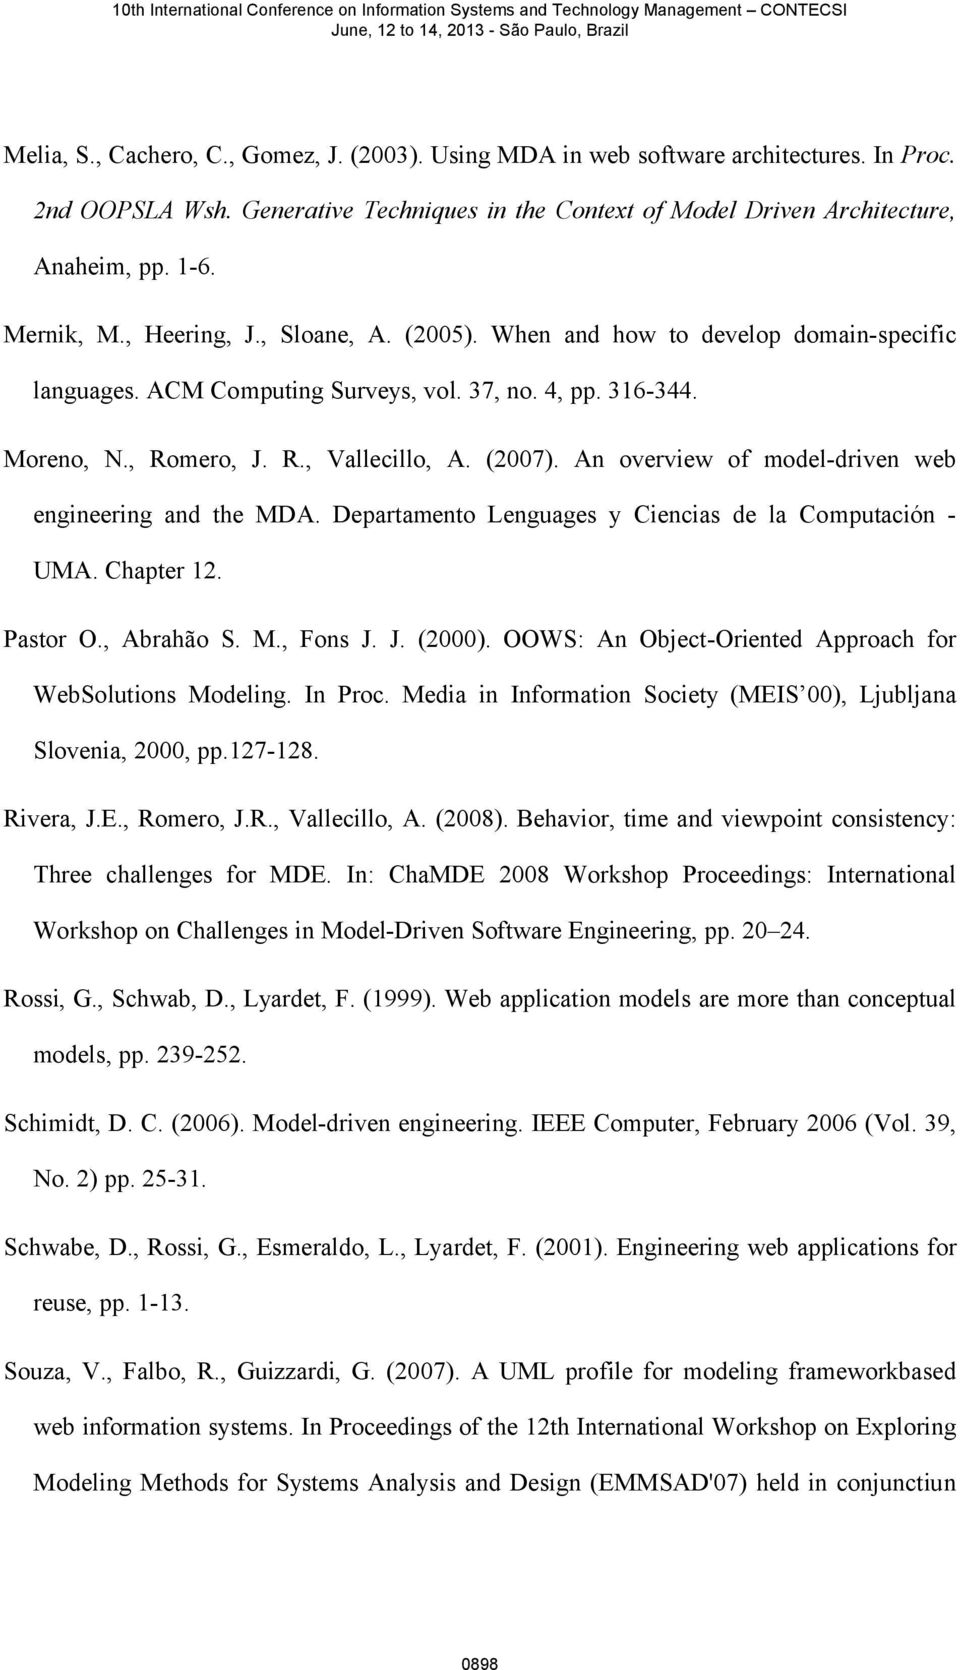 An overview of model-driven web engineering and the MDA. Departamento Lenguages y Ciencias de la Computación - UMA. Chapter 12. Pastor O., Abrahão S. M., Fons J. J. (2000).